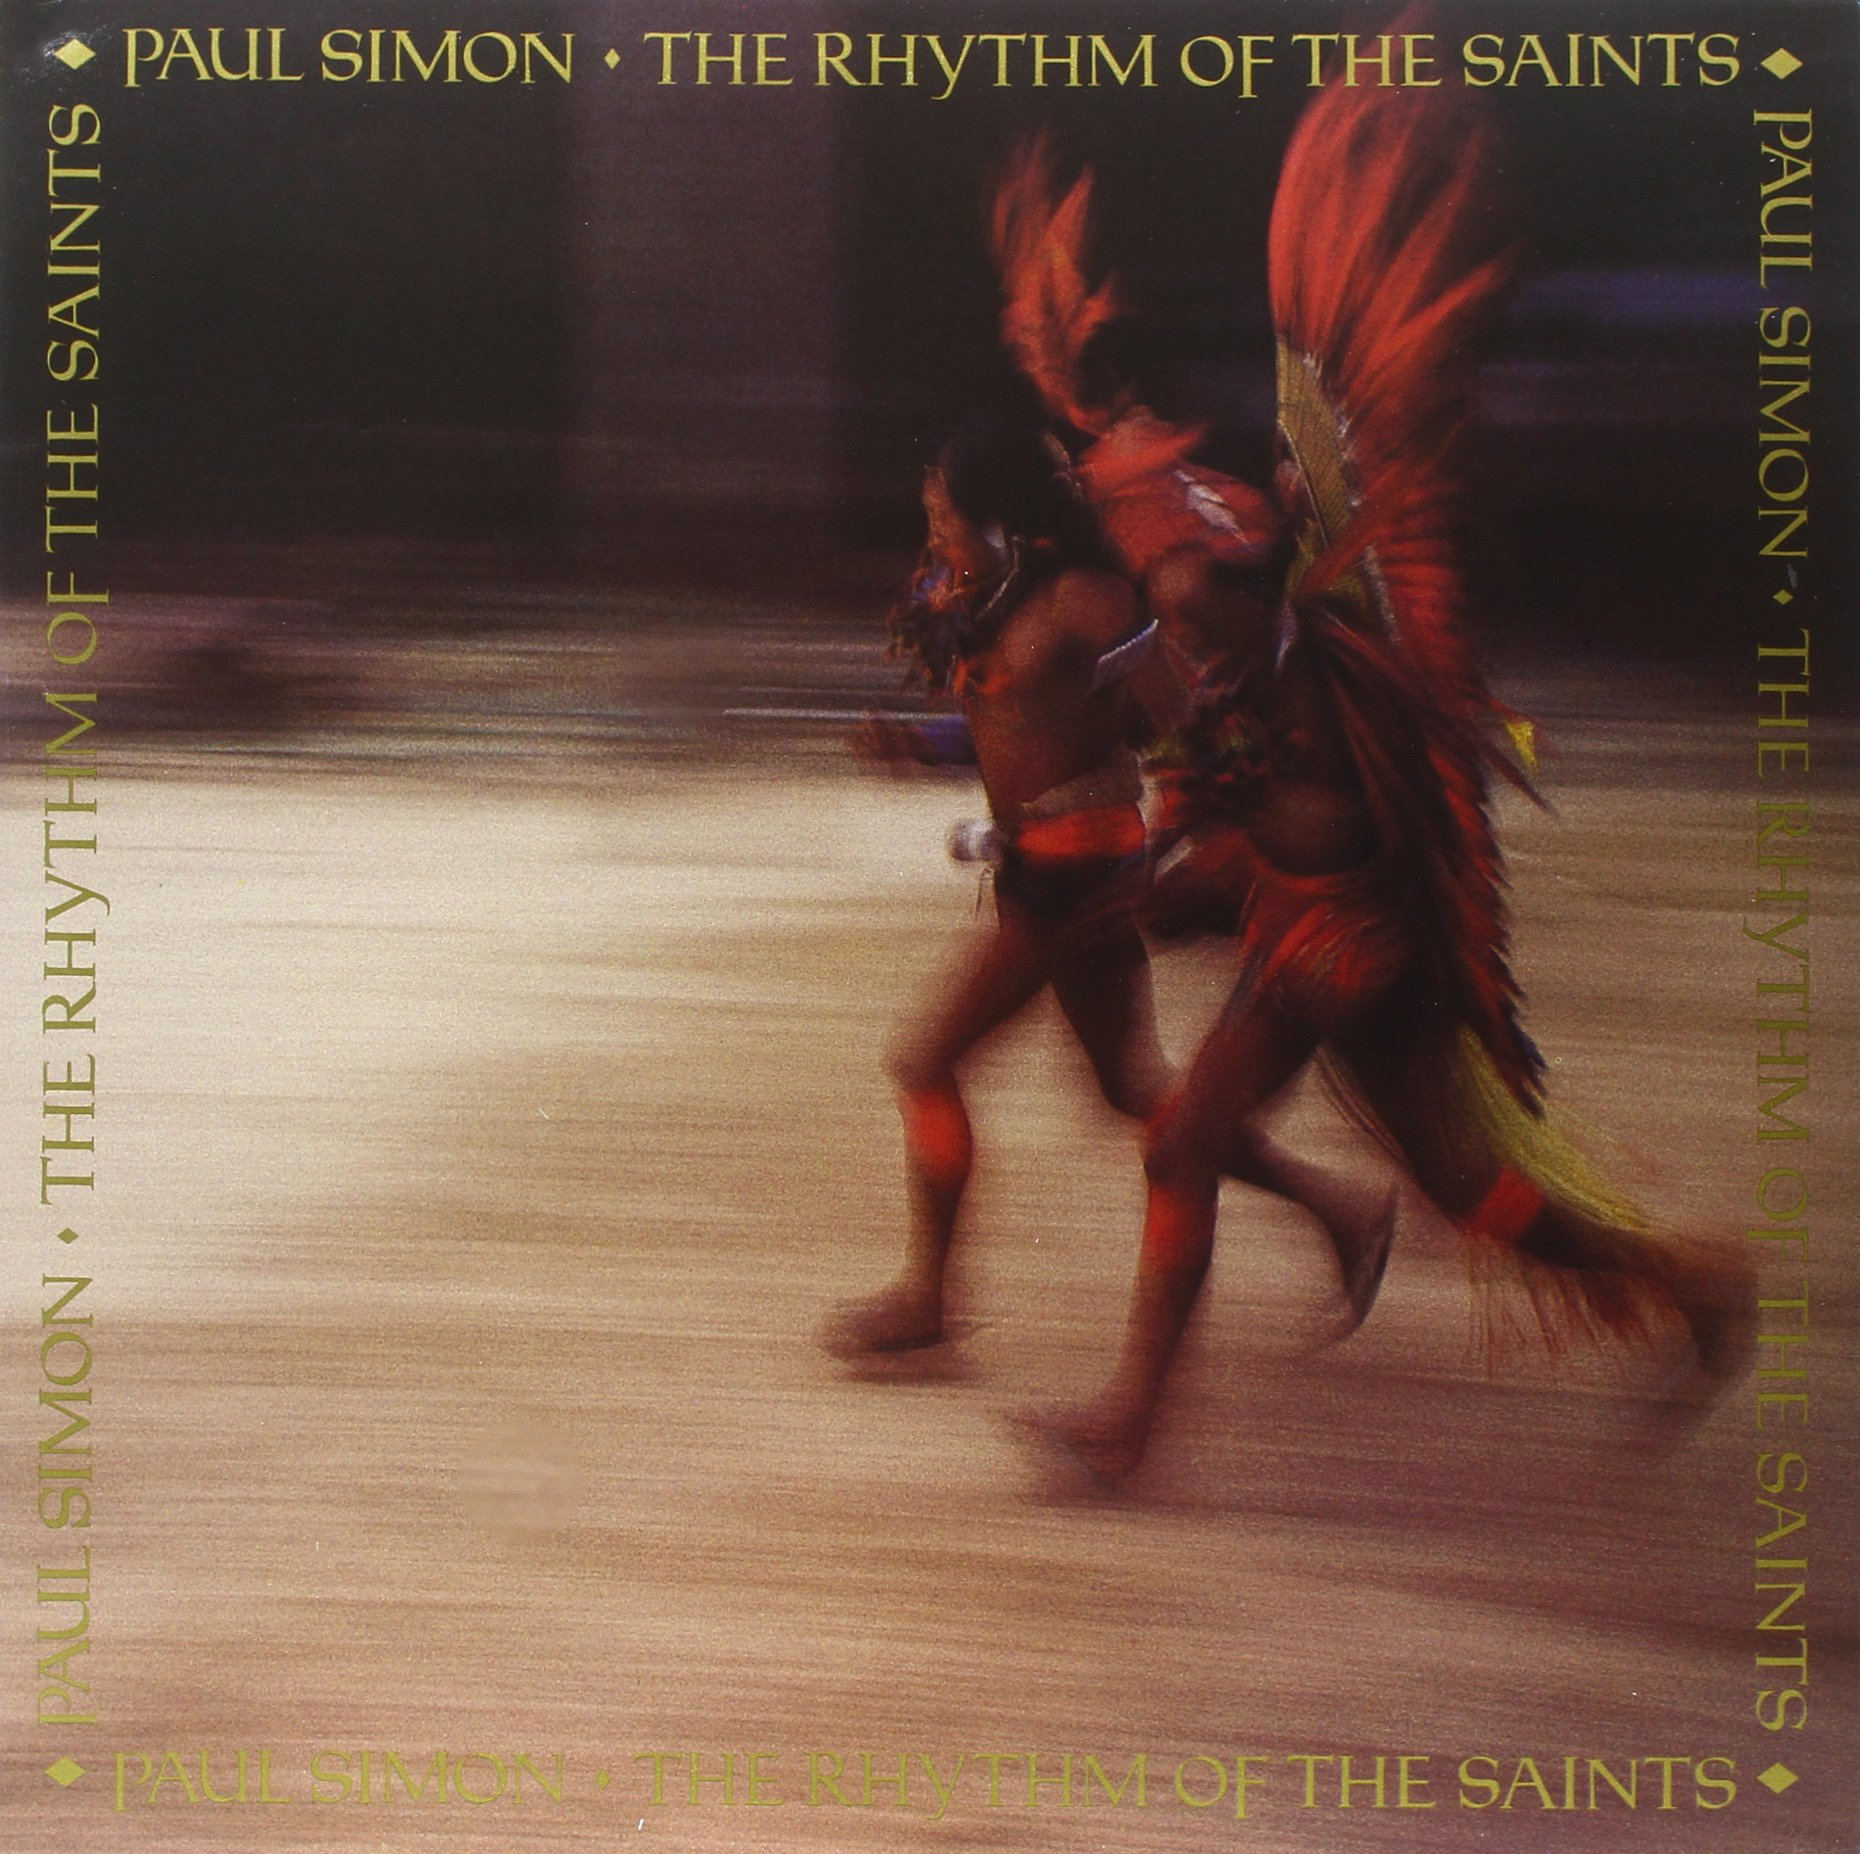 The Rhythm of the Saints by WARNER BROS